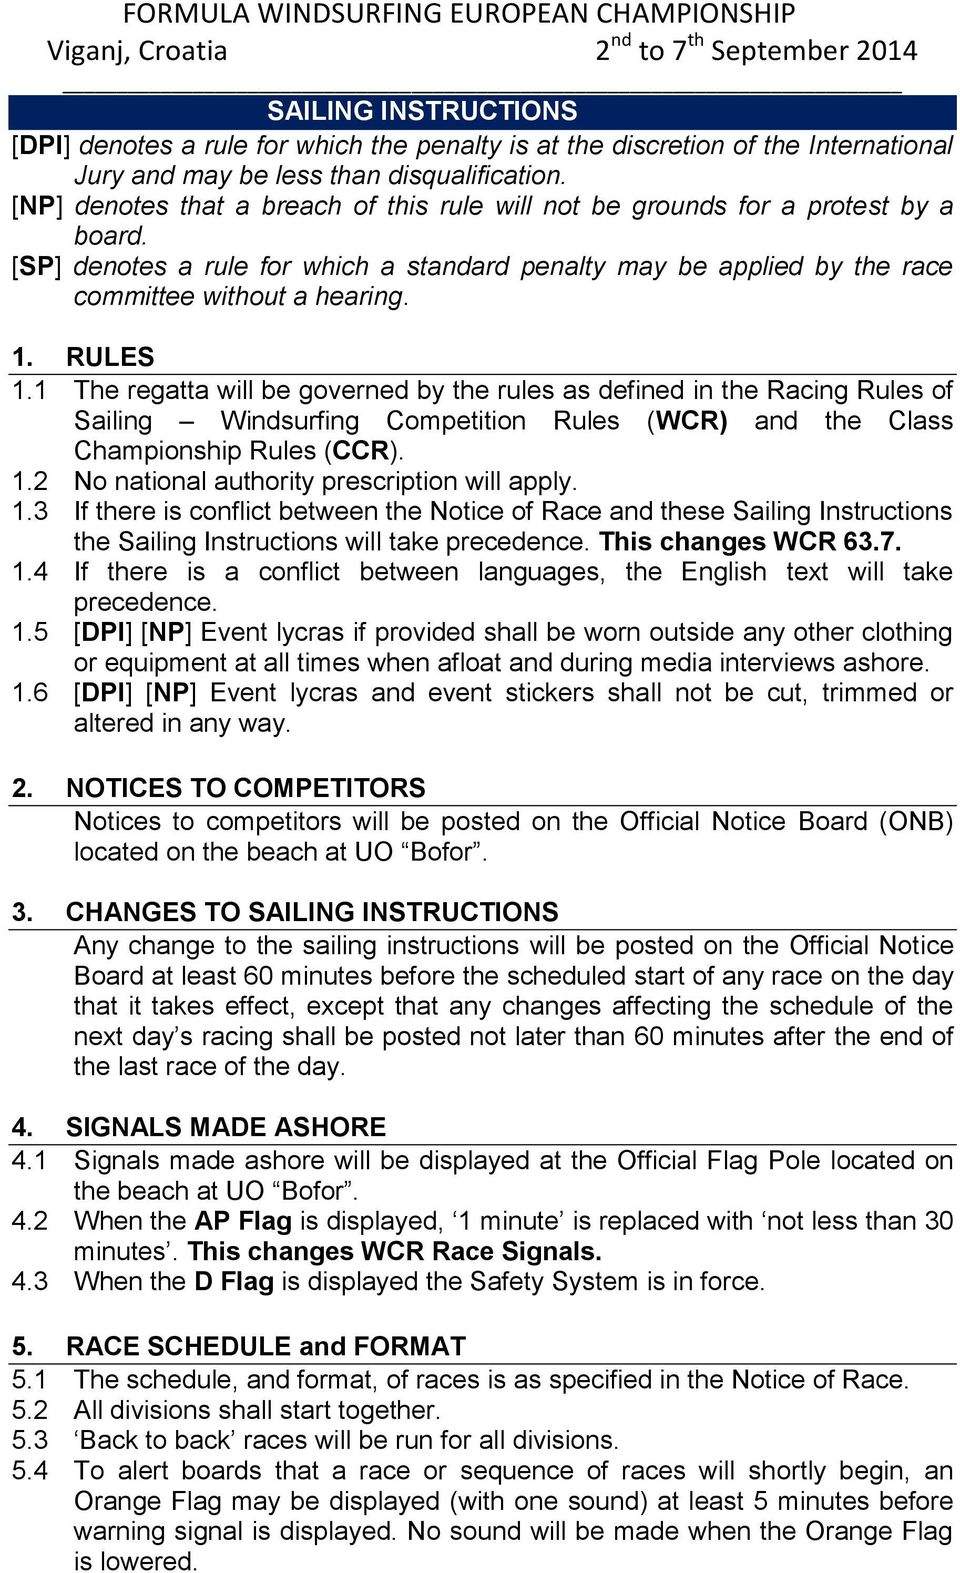 RULES 1.1 The regatta will be governed by the rules as defined in the Racing Rules of Sailing Windsurfing Competition Rules (WCR) and the Class Championship Rules (CCR). 1.2 No national authority prescription will apply.